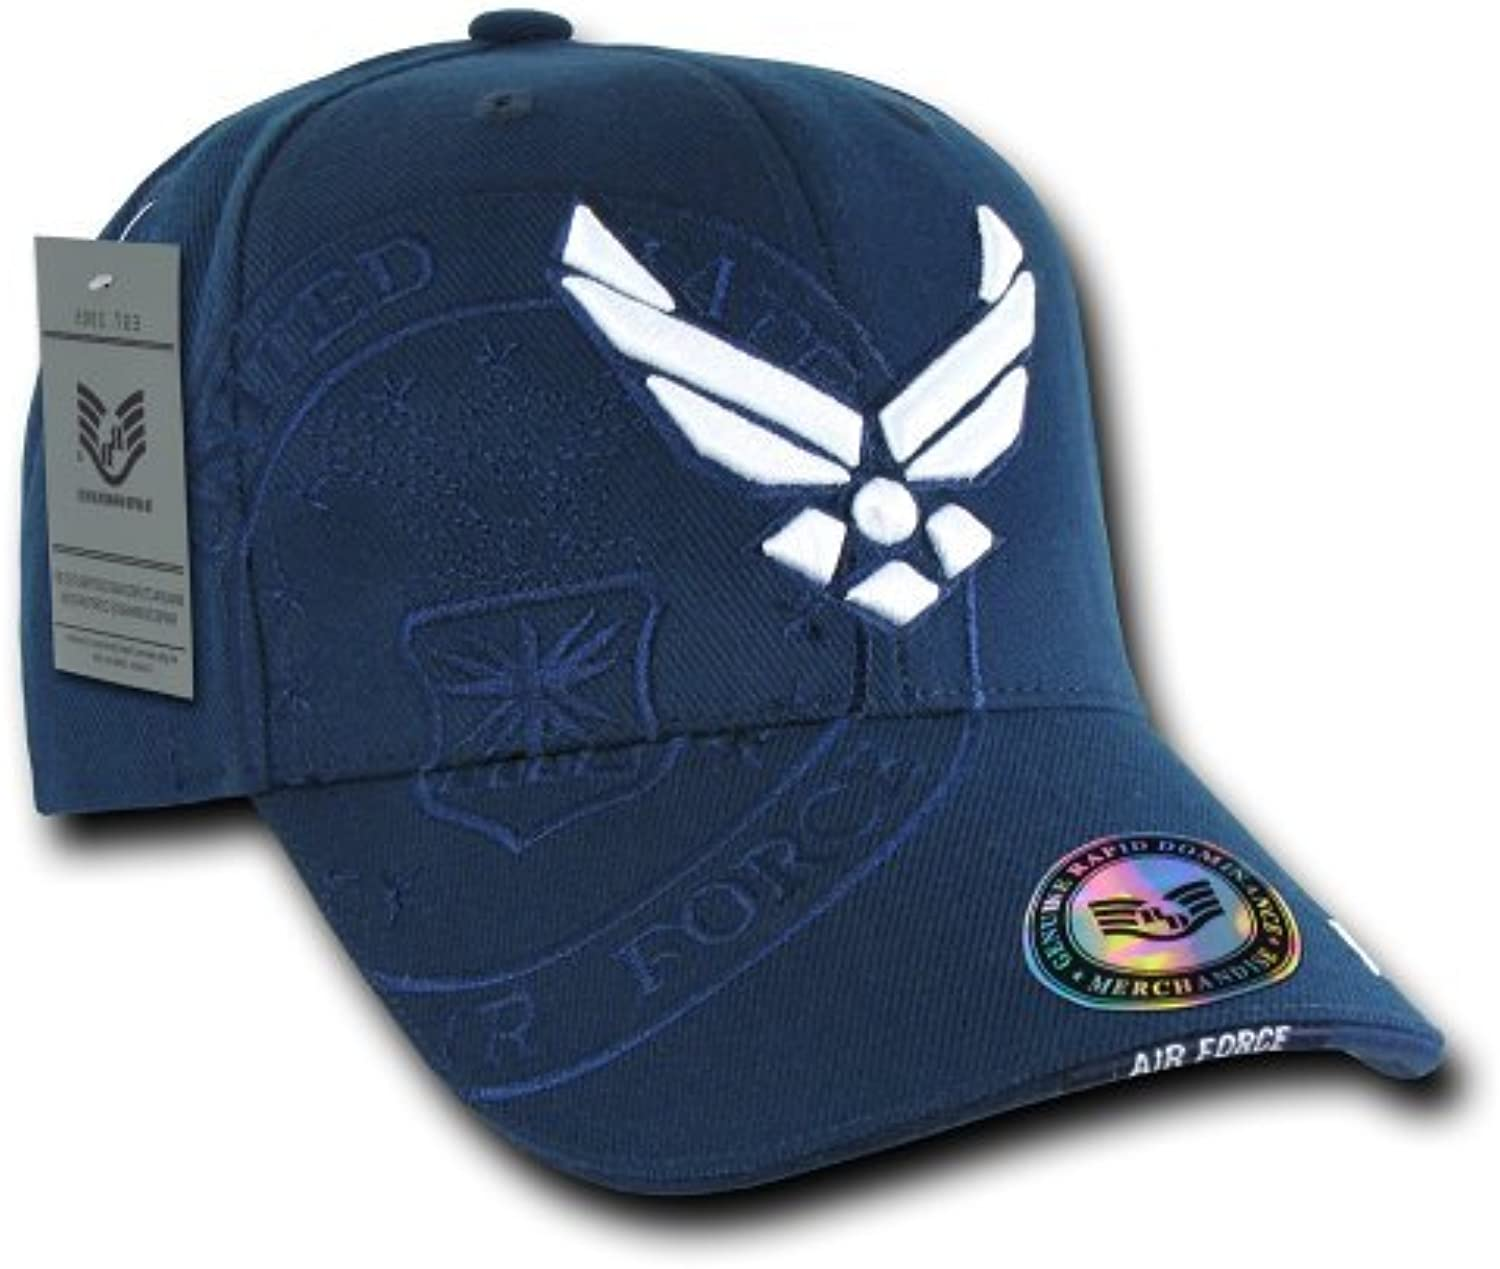 Rapiddominance Air Force Wing Shadow Cap, Navy by Rapid Dominance